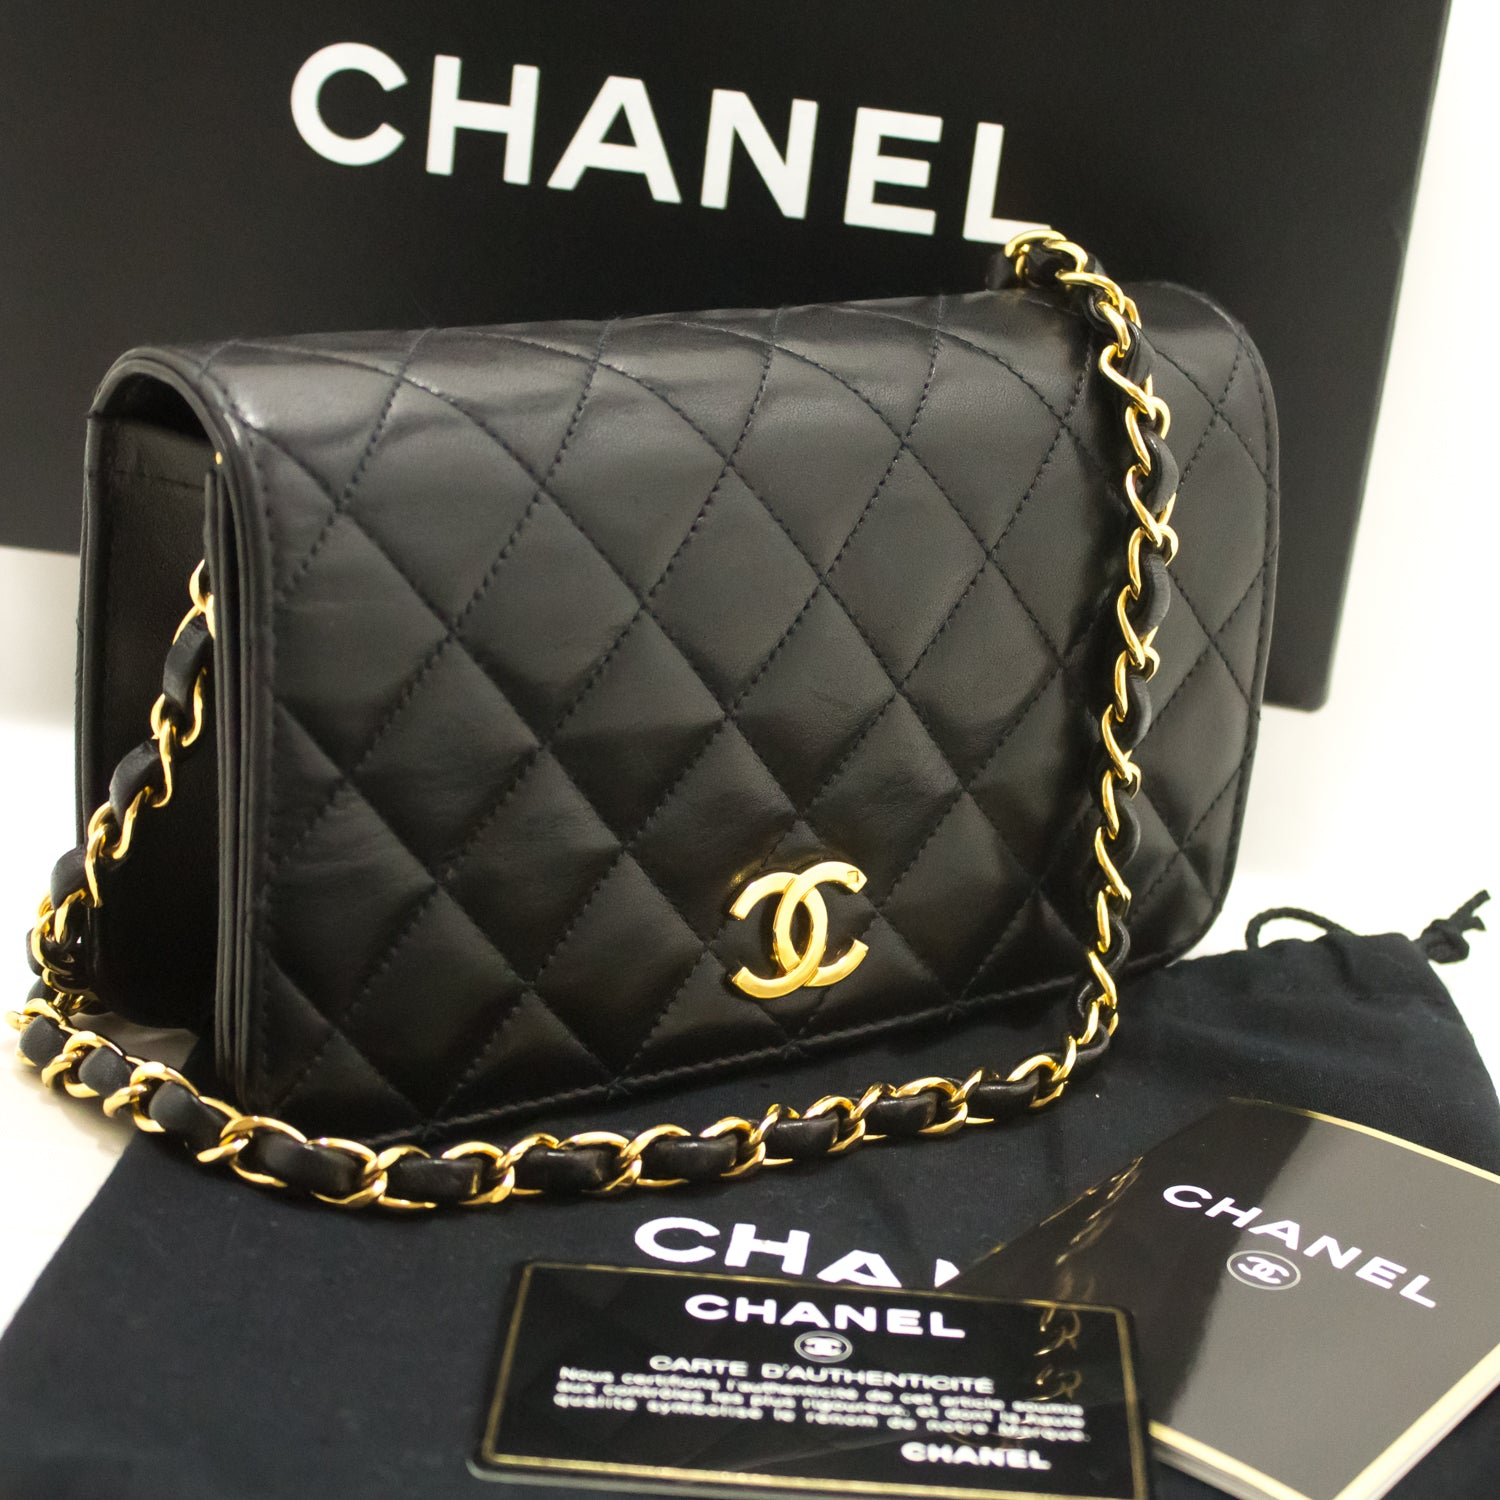 674dc14837e9 ... CHANEL Small Chain Shoulder Bag Clutch Black Quilted Flap Lambskin k35- Chanel-hannari- ...